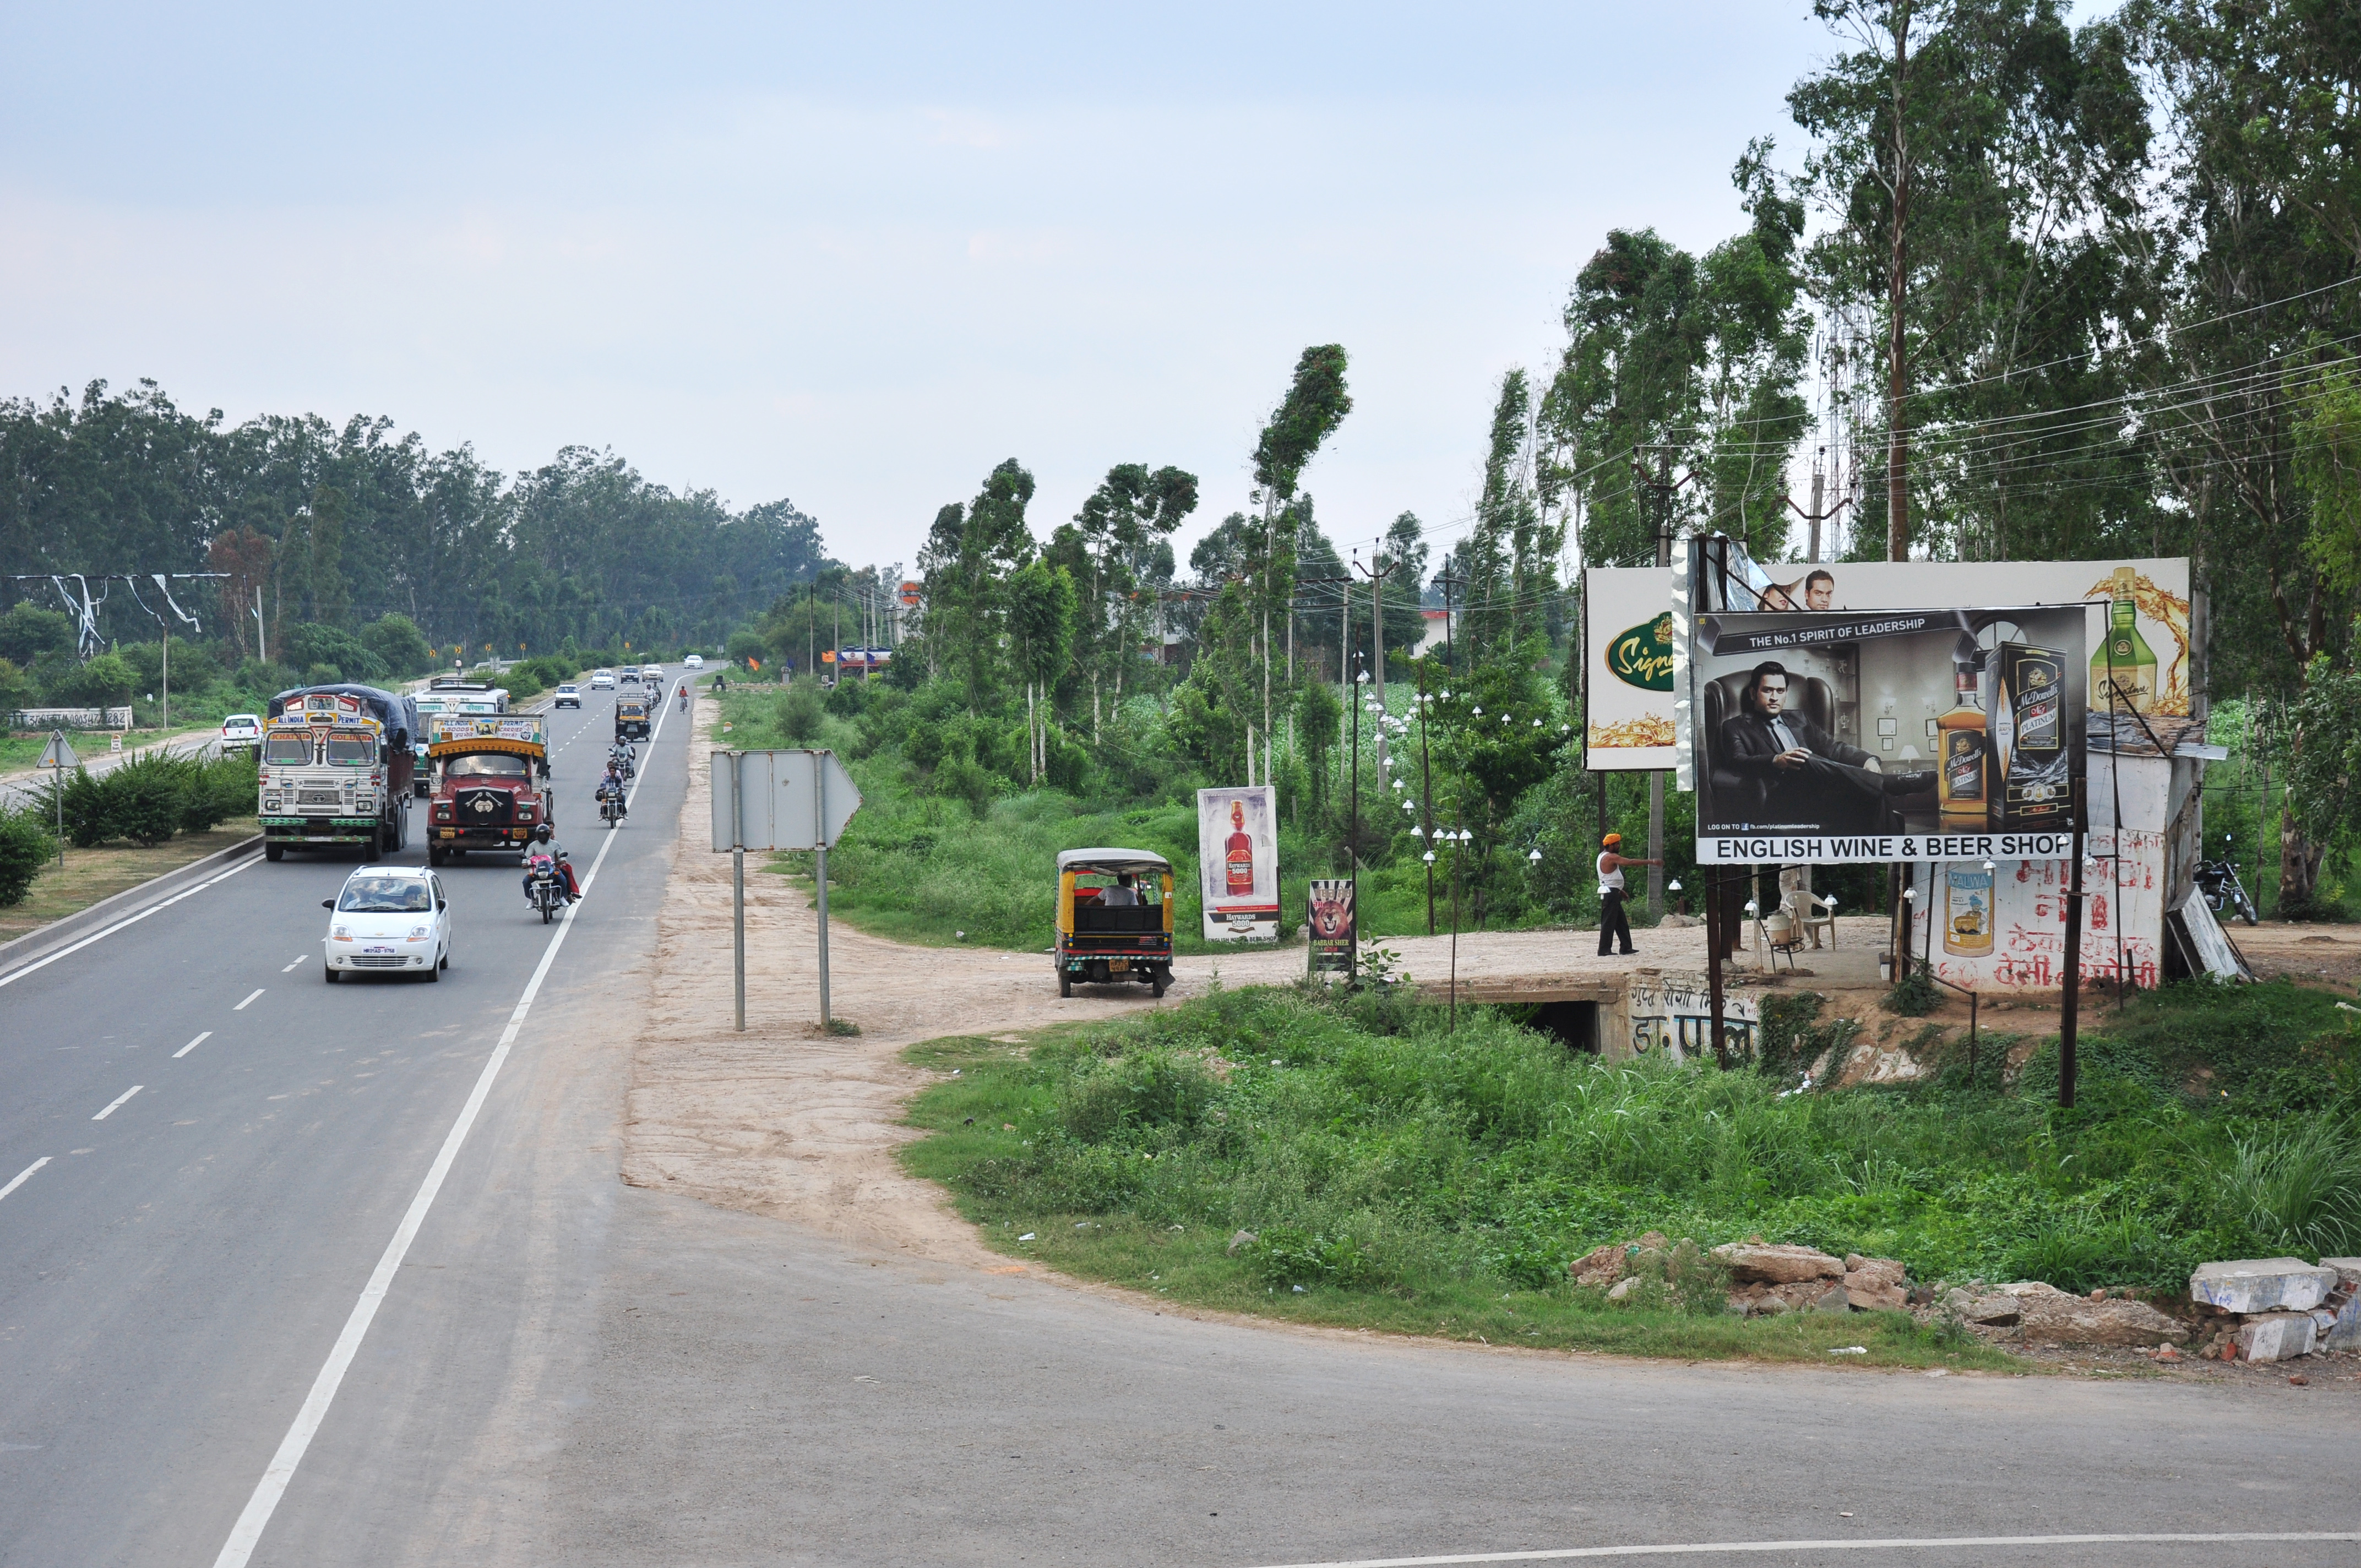 Landmark Road Safety Ruling in India - Global Alliance of